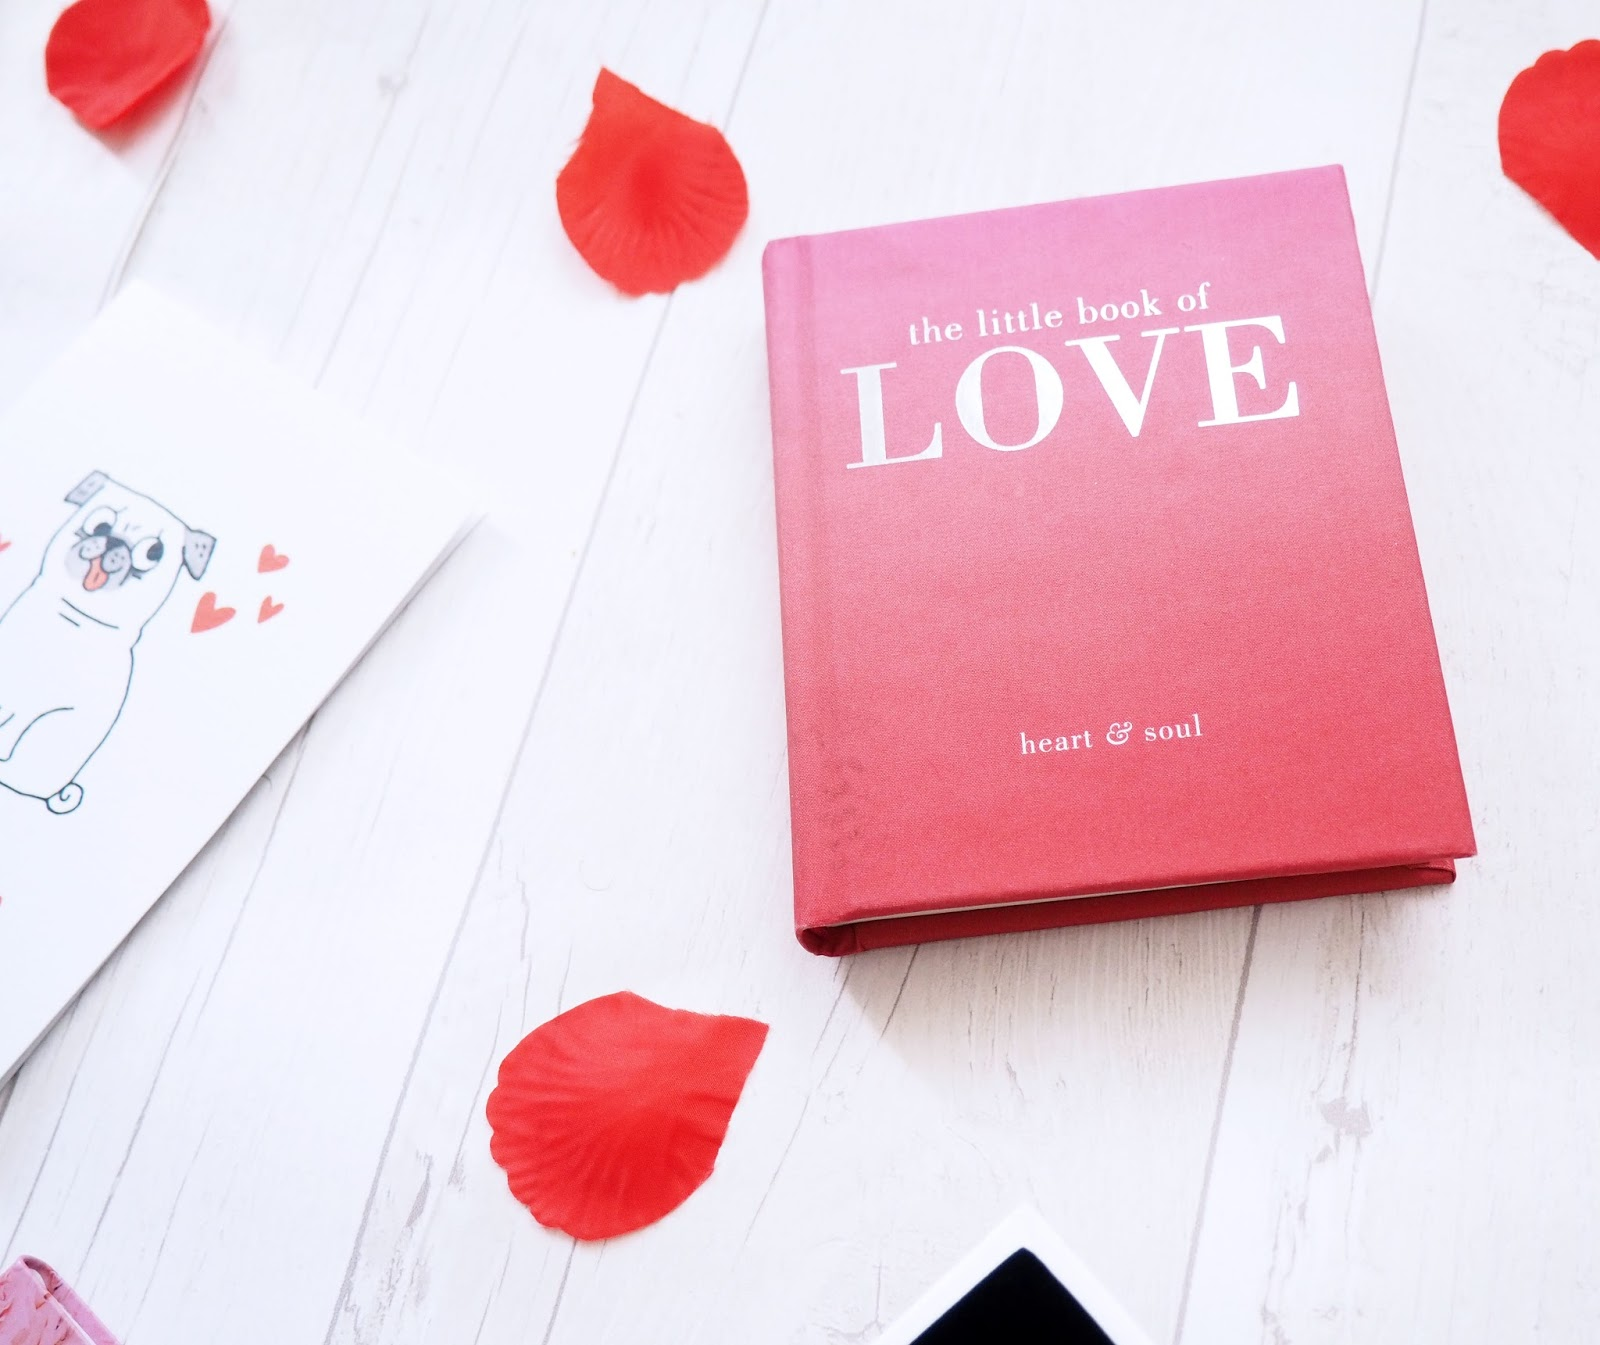 The Little Book of Love from Joy